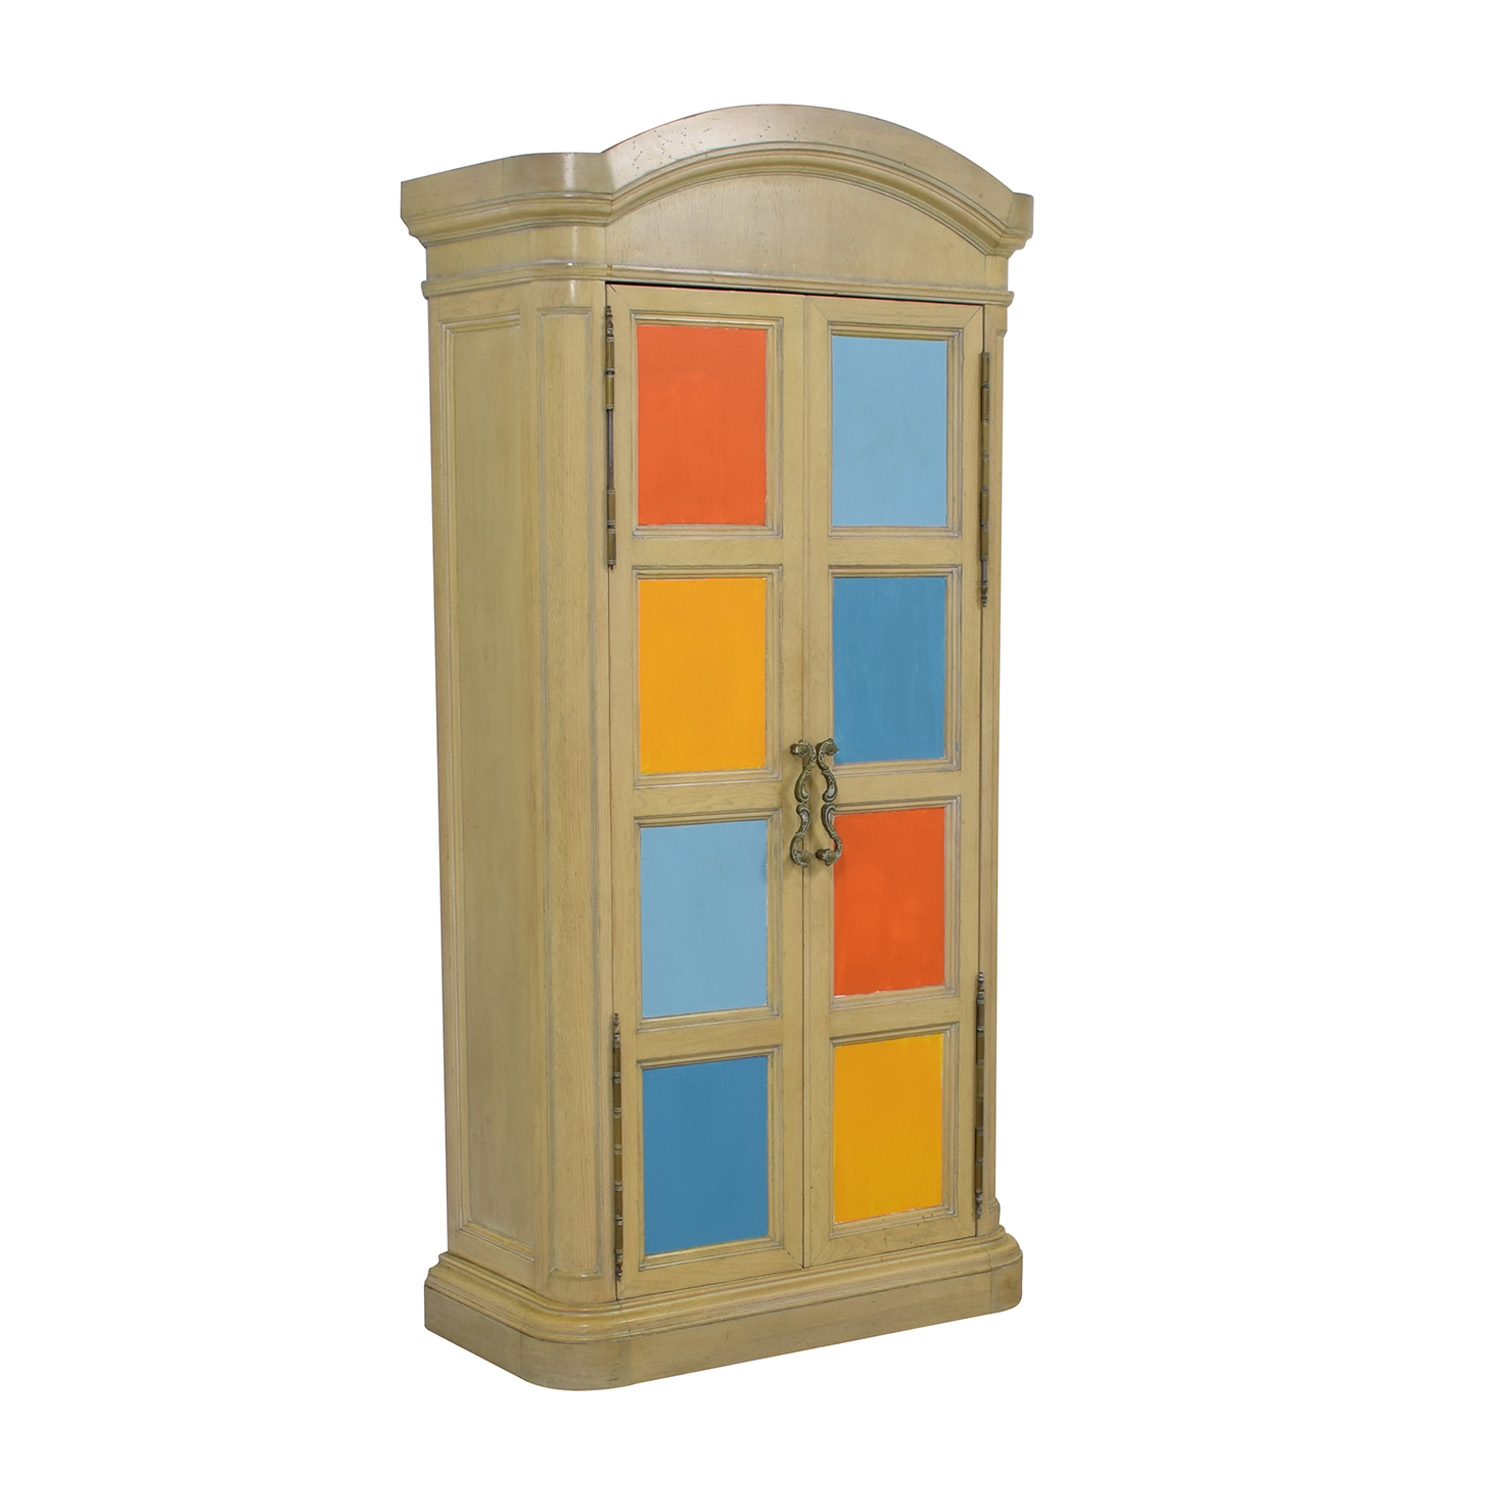 Drexel Drexel Painted Country Fresh Wood Armoire on sale